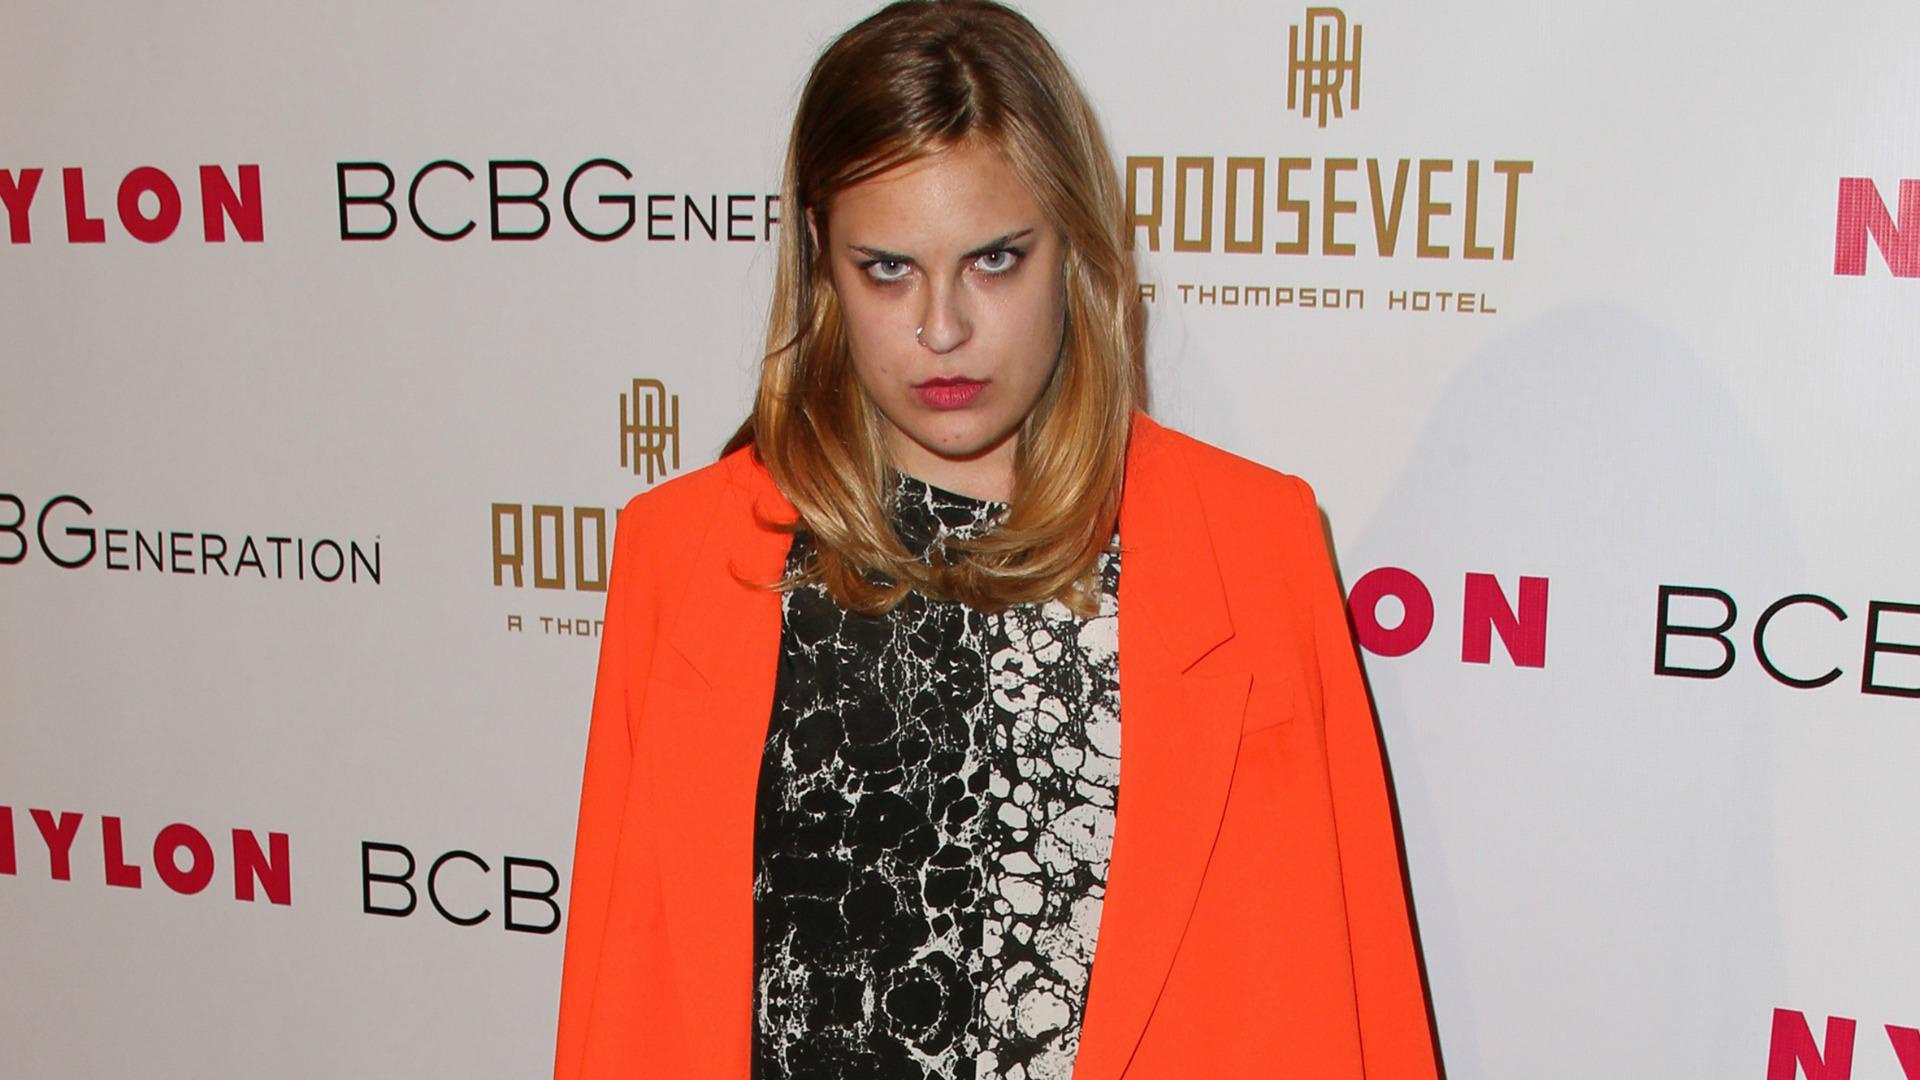 Reports claim Tallulah Willis has secretly entered rehab